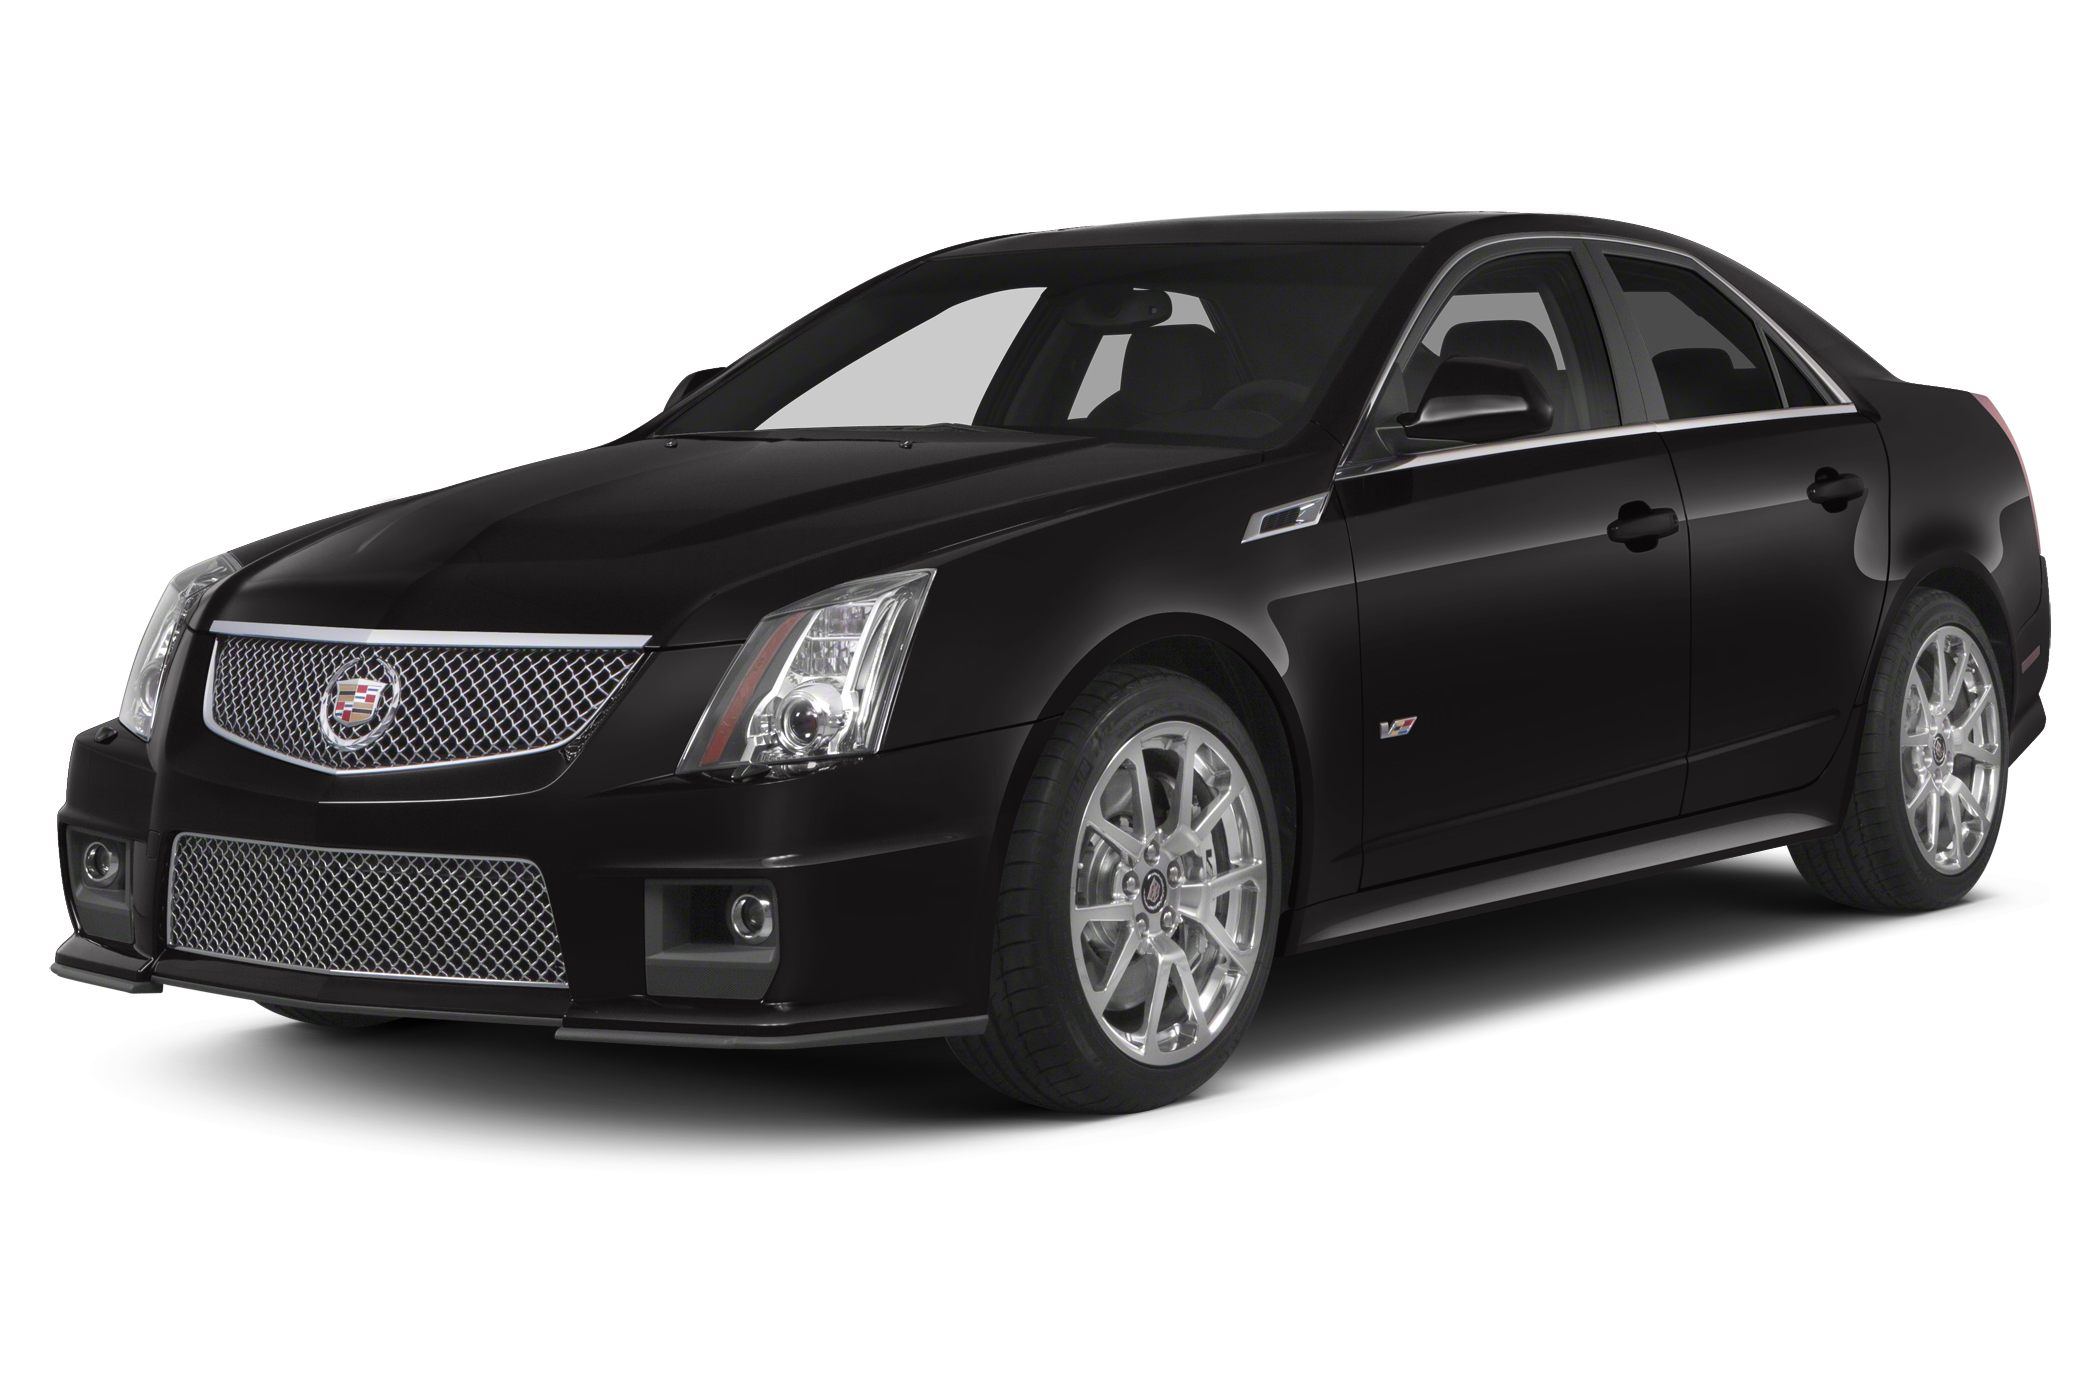 USC20CAC131A021001 Great Description About 2012 Cts-v for Sale with Inspiring Images Cars Review